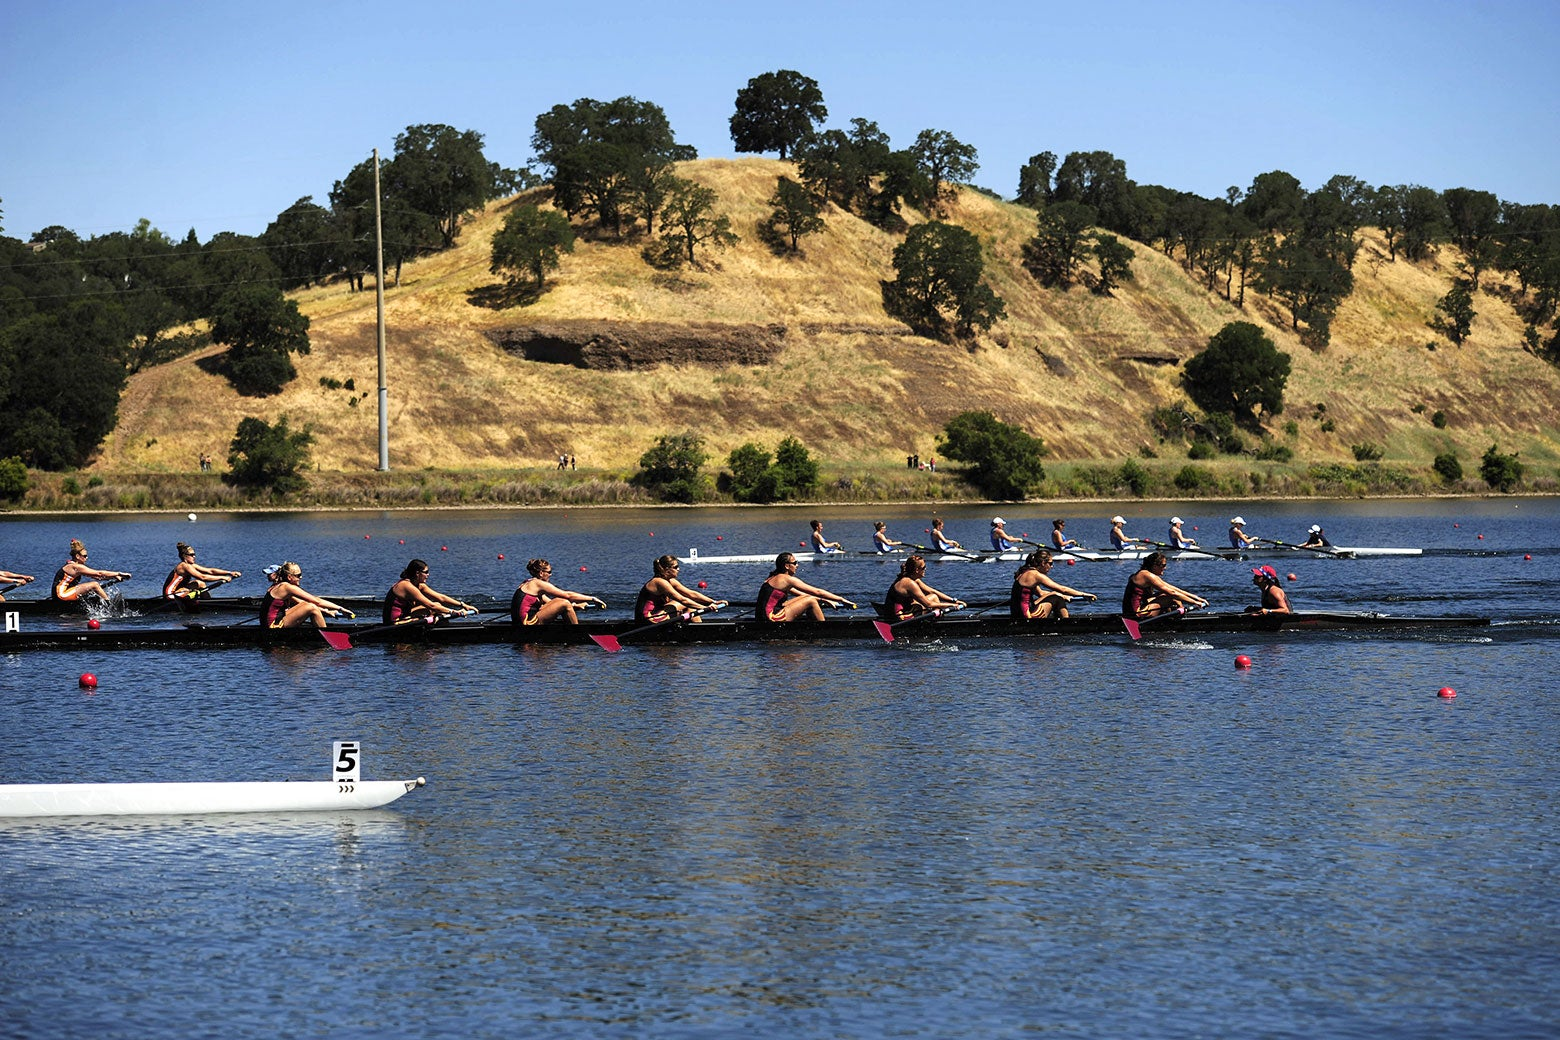 USC edges out UCLA for second place during the 2010 NCAA Division I Rowing Championships.